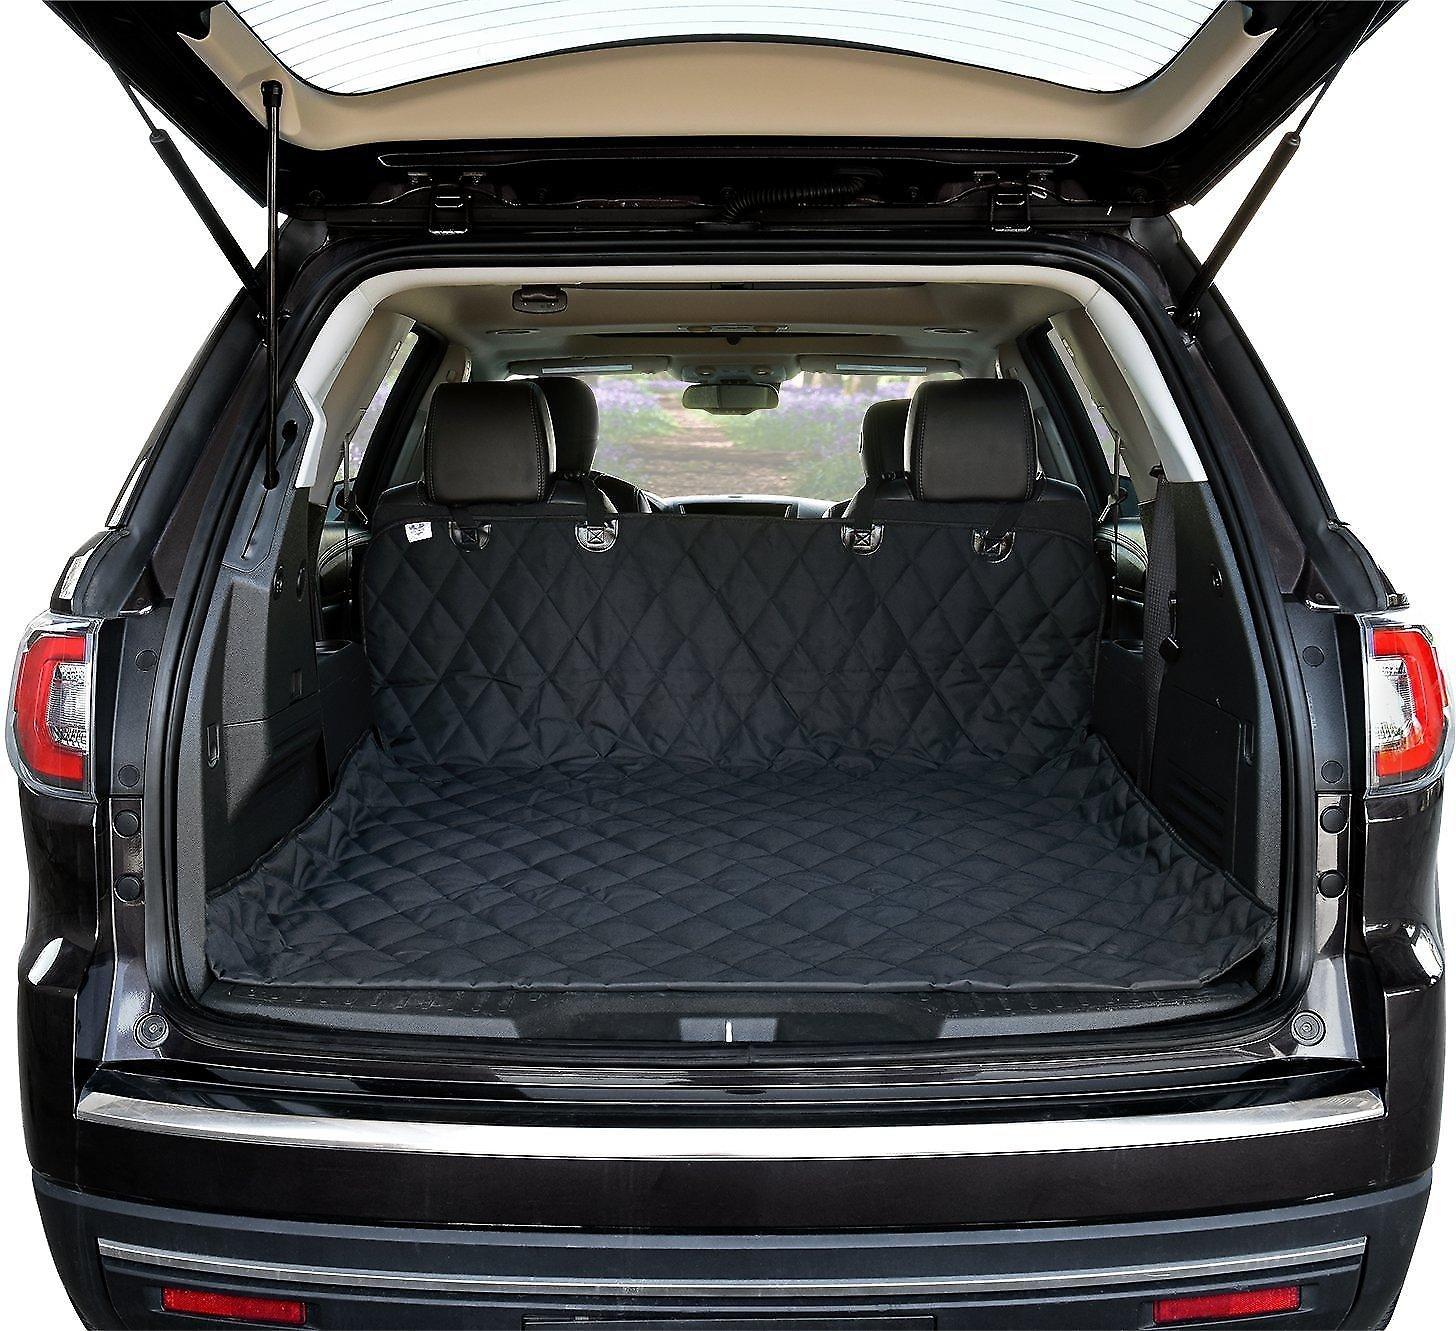 Waterproof Car Cover >> Arf Pets Waterproof & Non-Slip SUV Cargo Liner, Large - Chewy.com